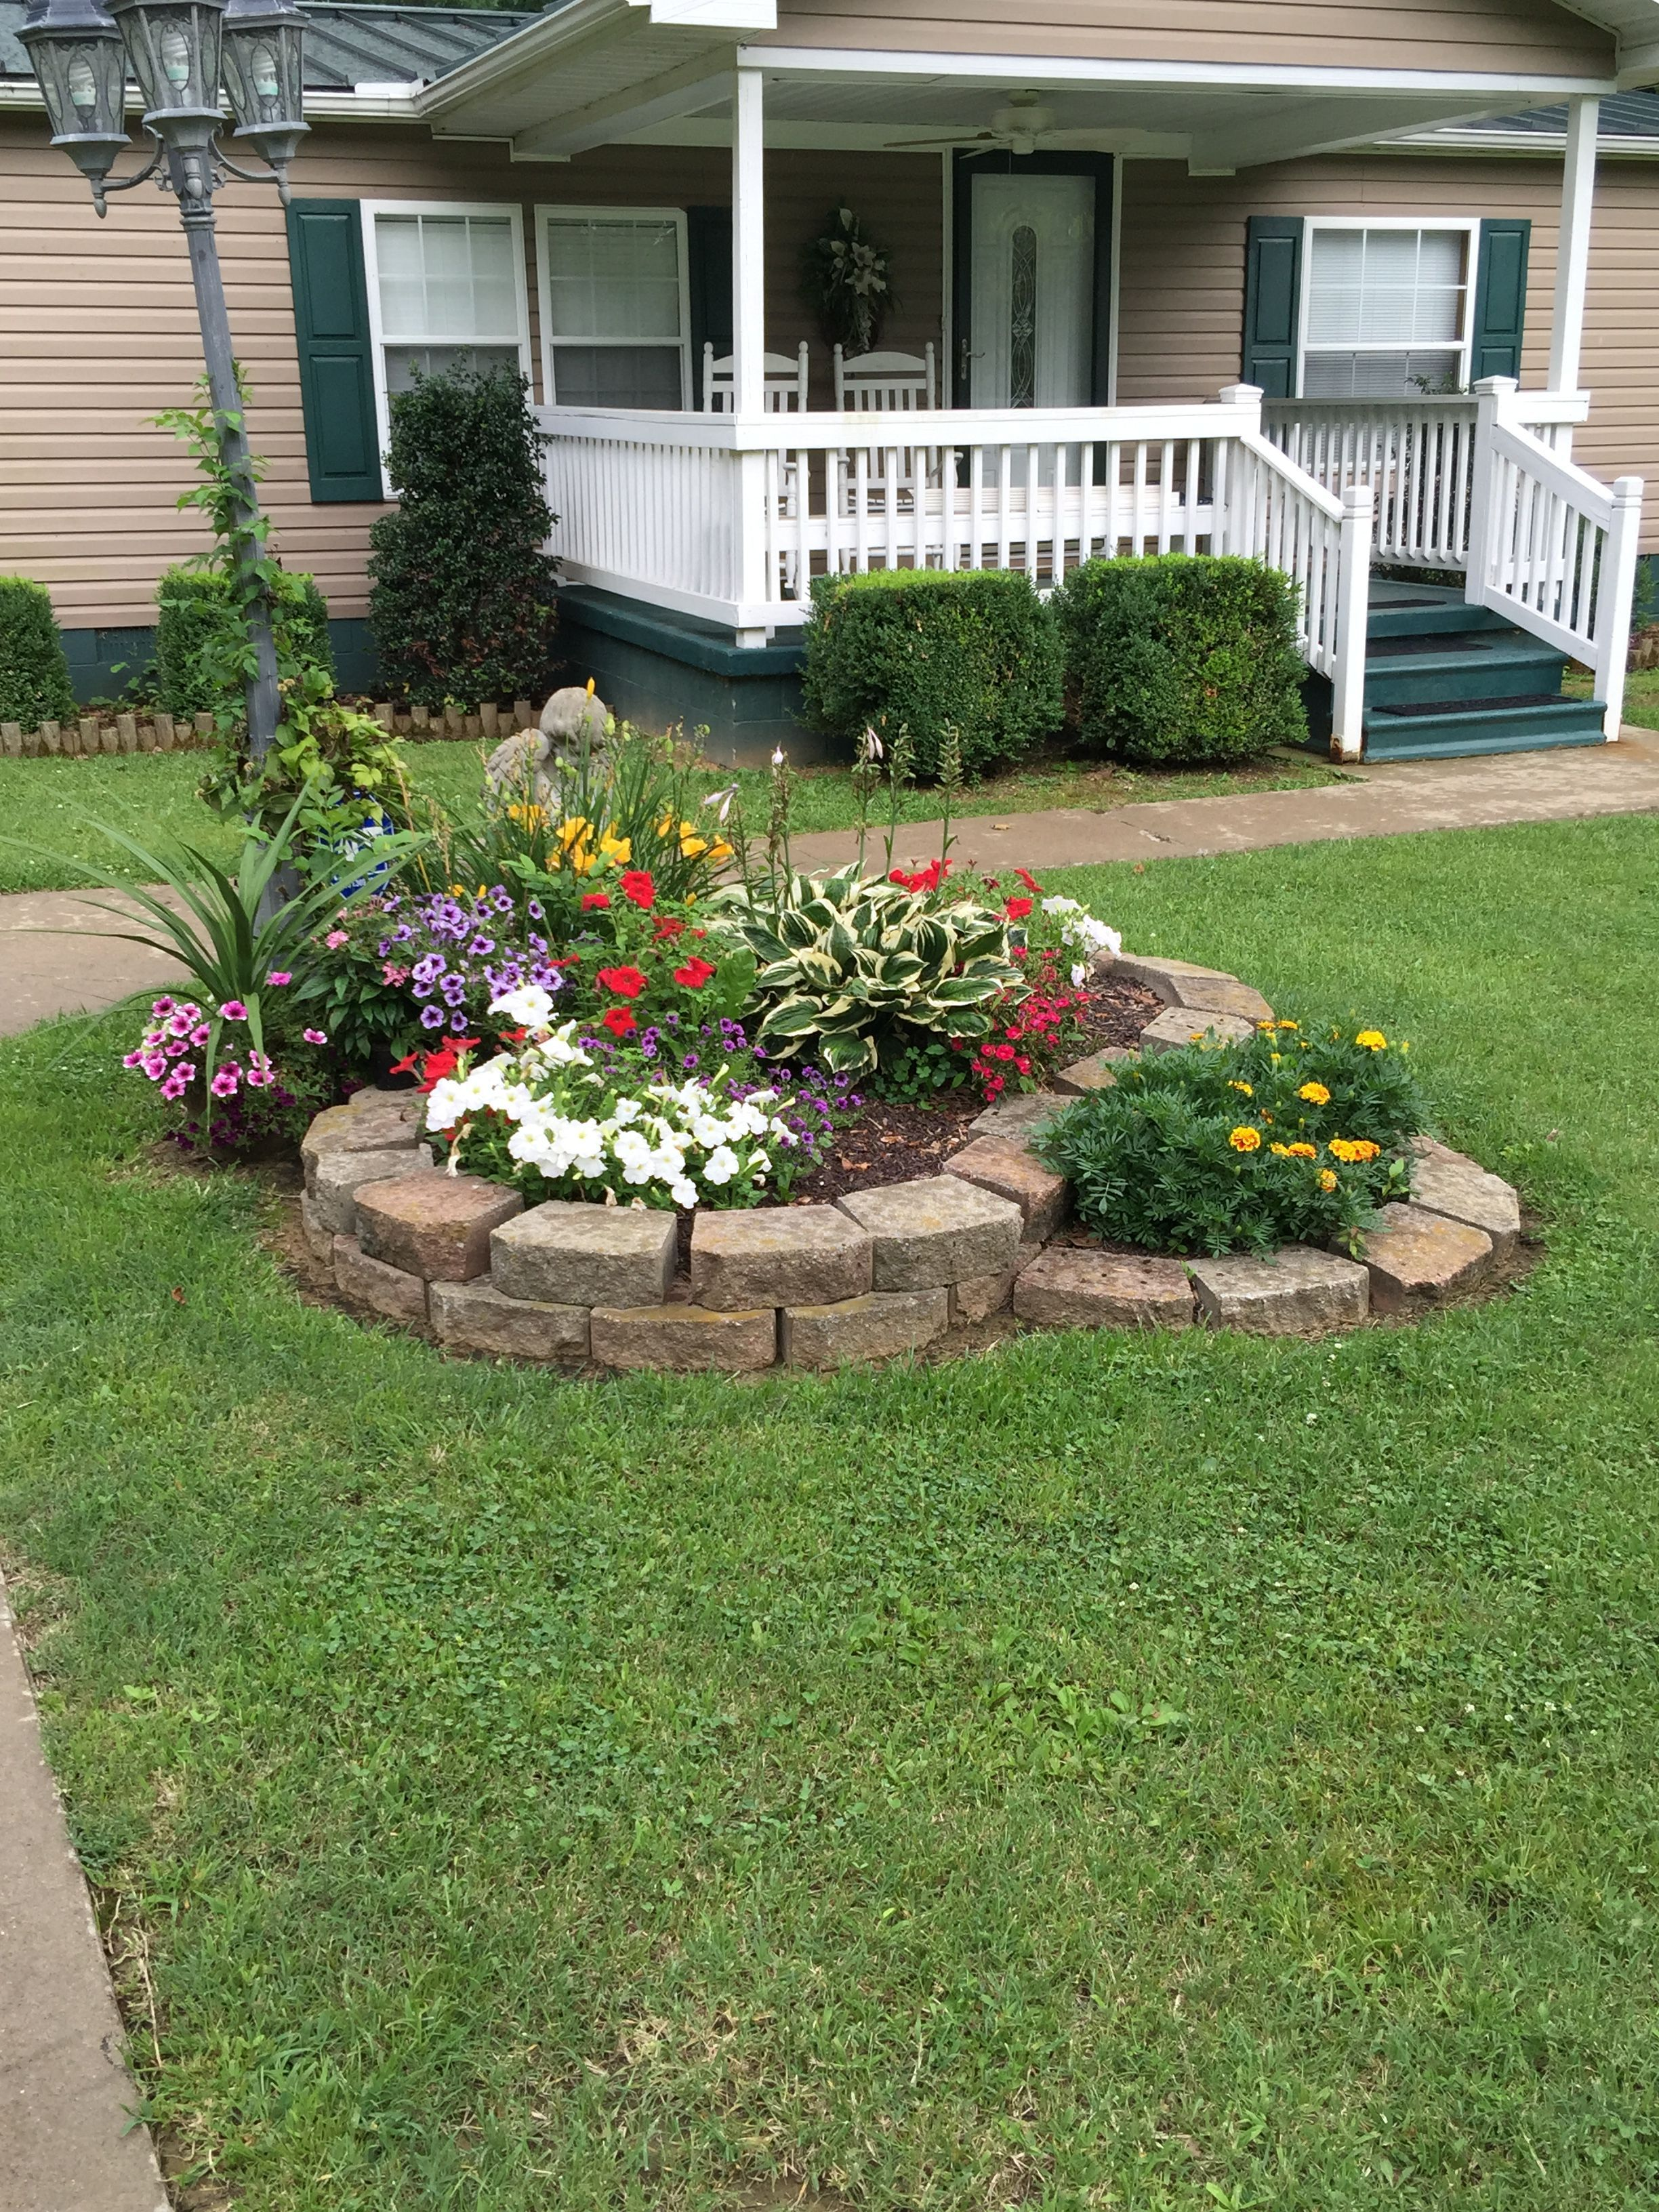 50 new front yard landscaping design ideas cheap on modern front yard landscaping ideas id=73063